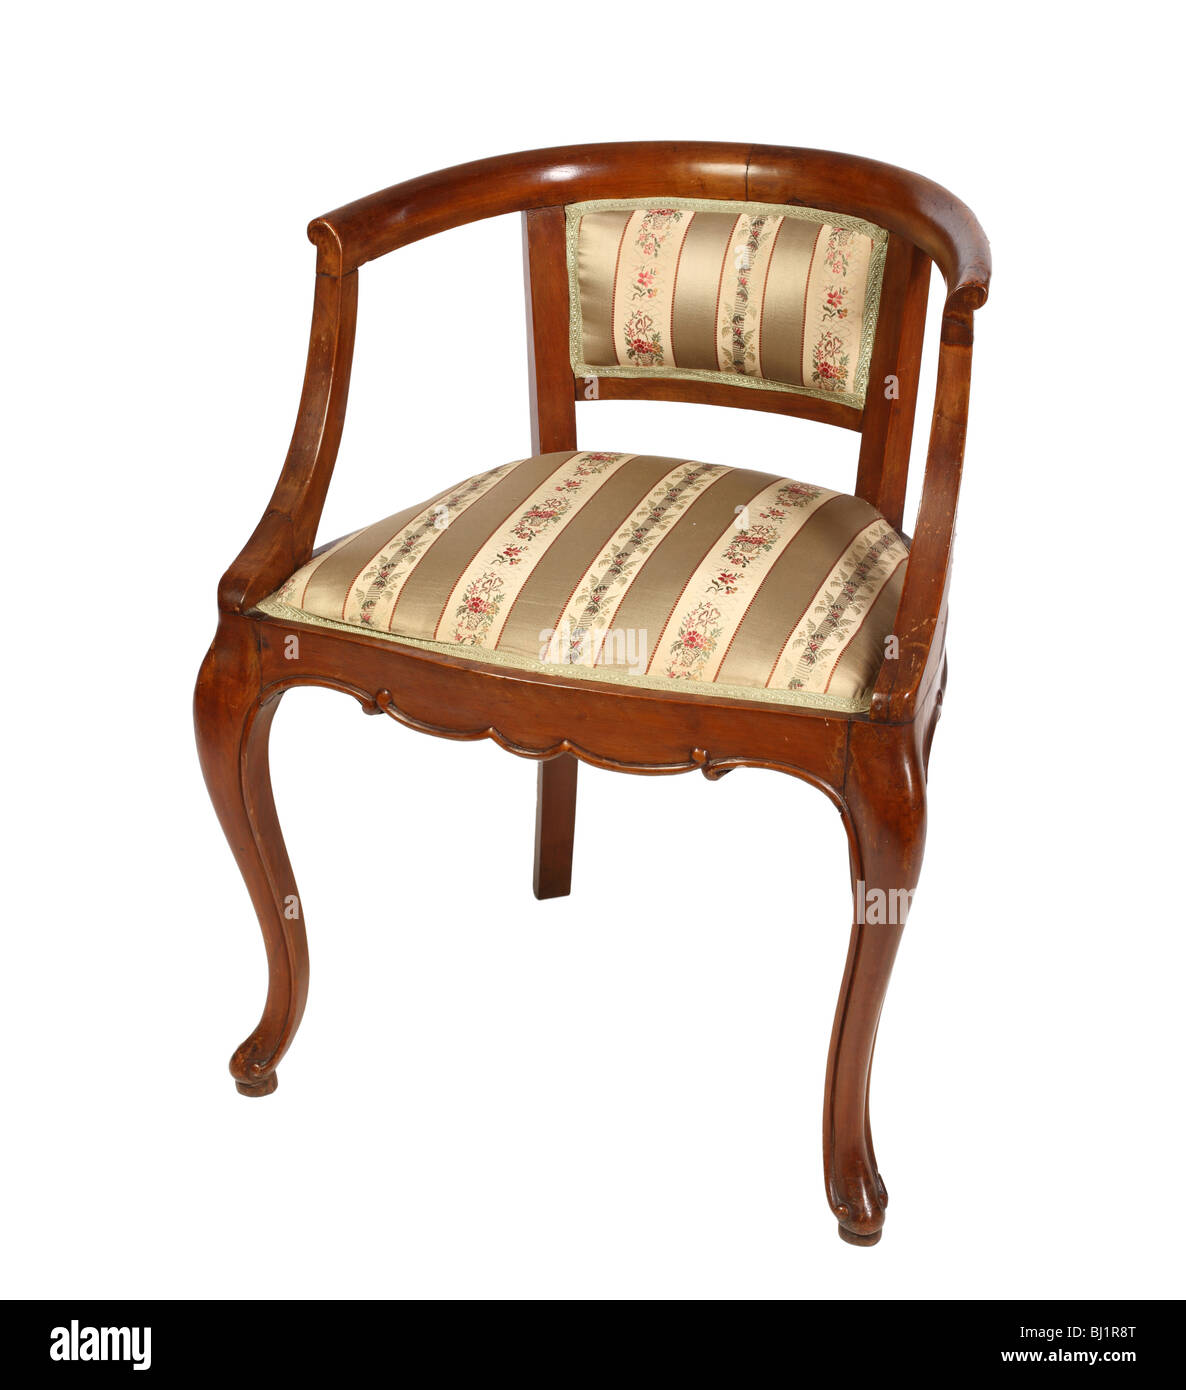 Fine Image Of Classic Old Wooden Armchair On White